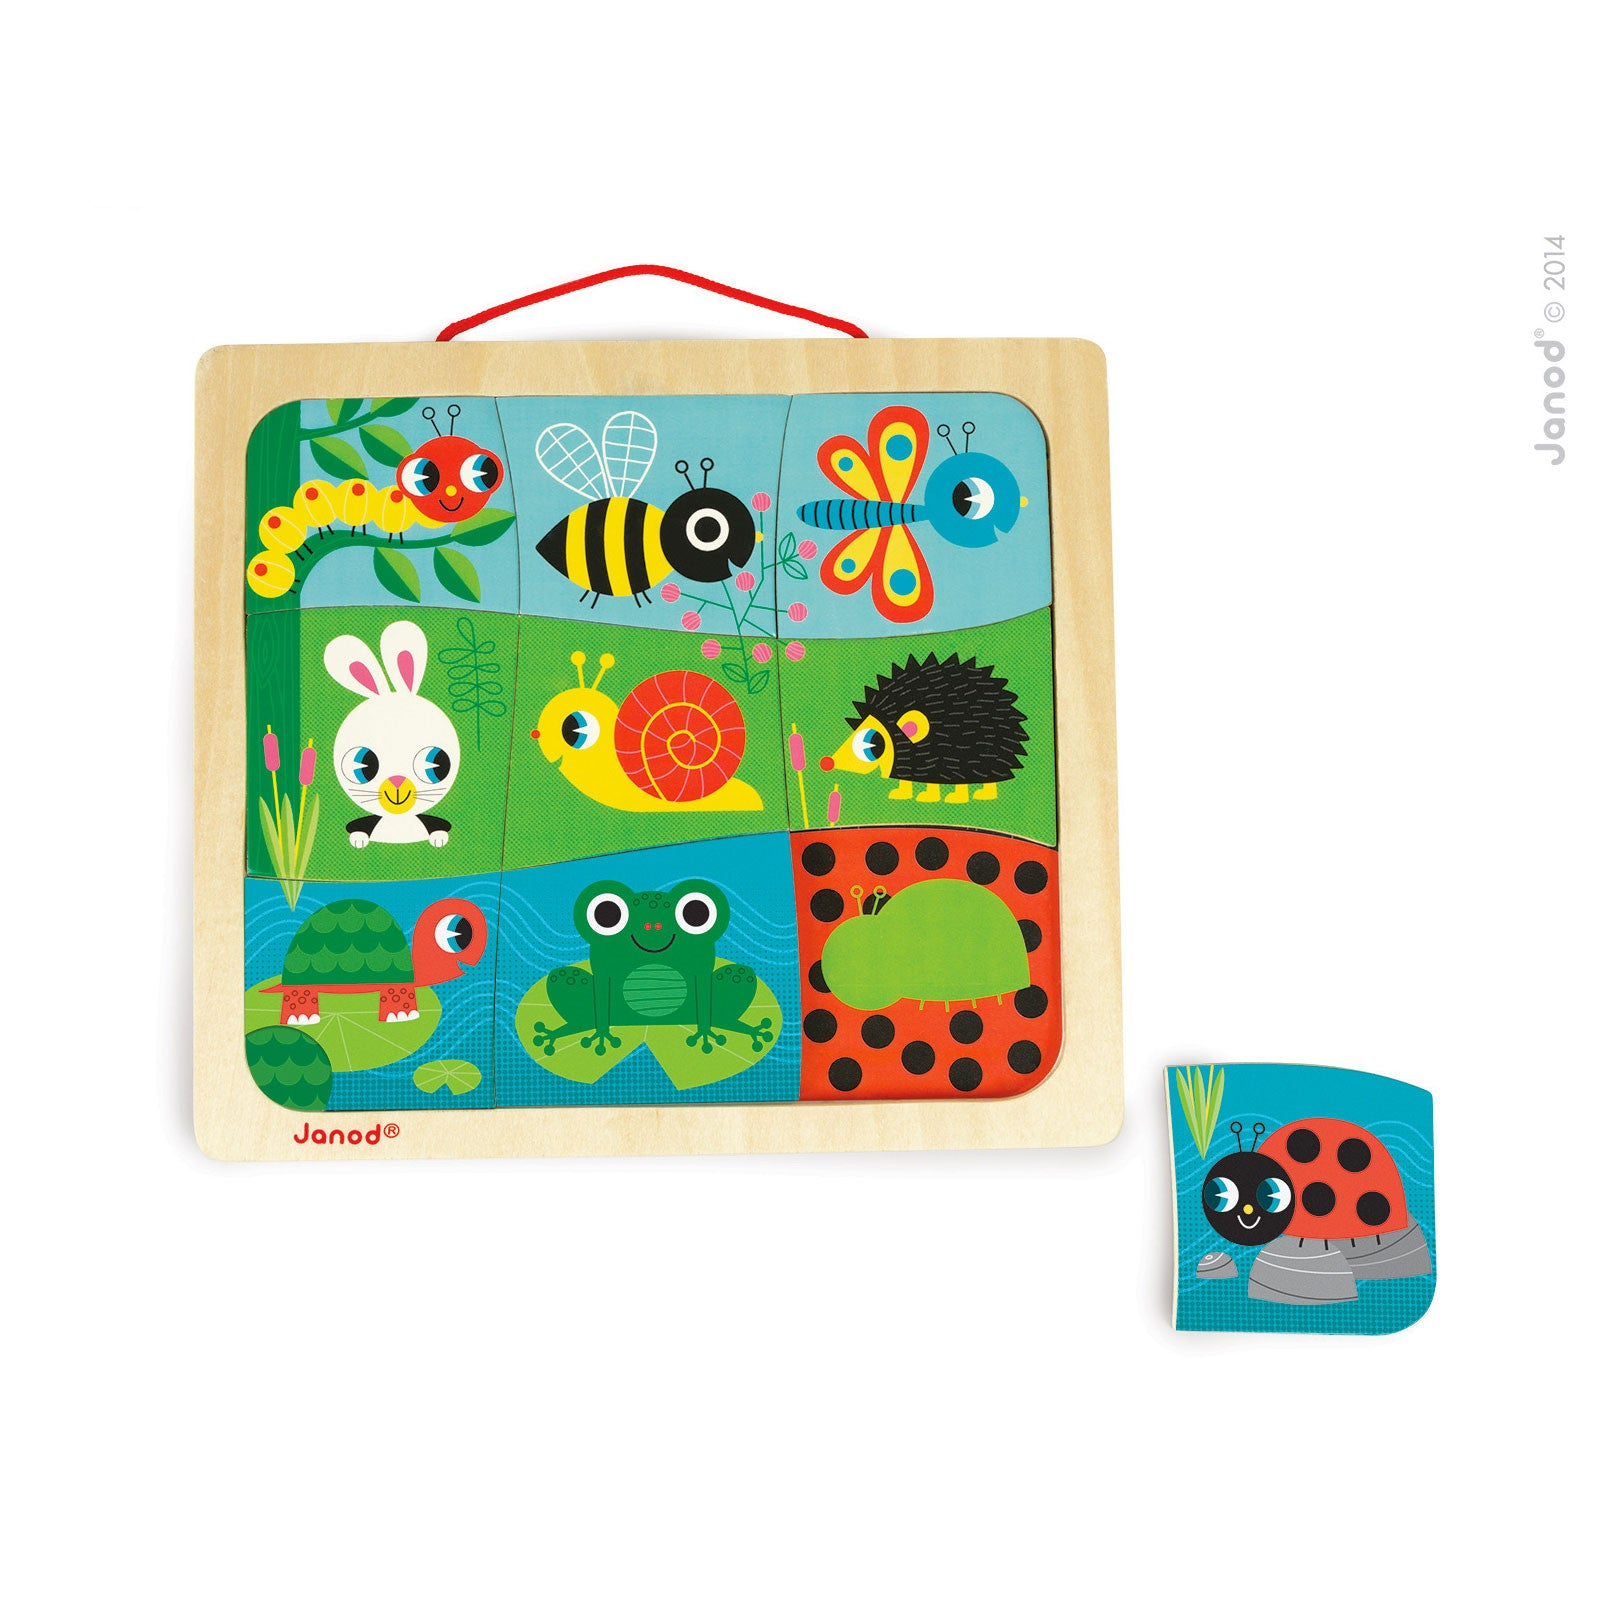 Janod Happy Garden Magnetic Puzzle   - Janod - Little Earth Nest